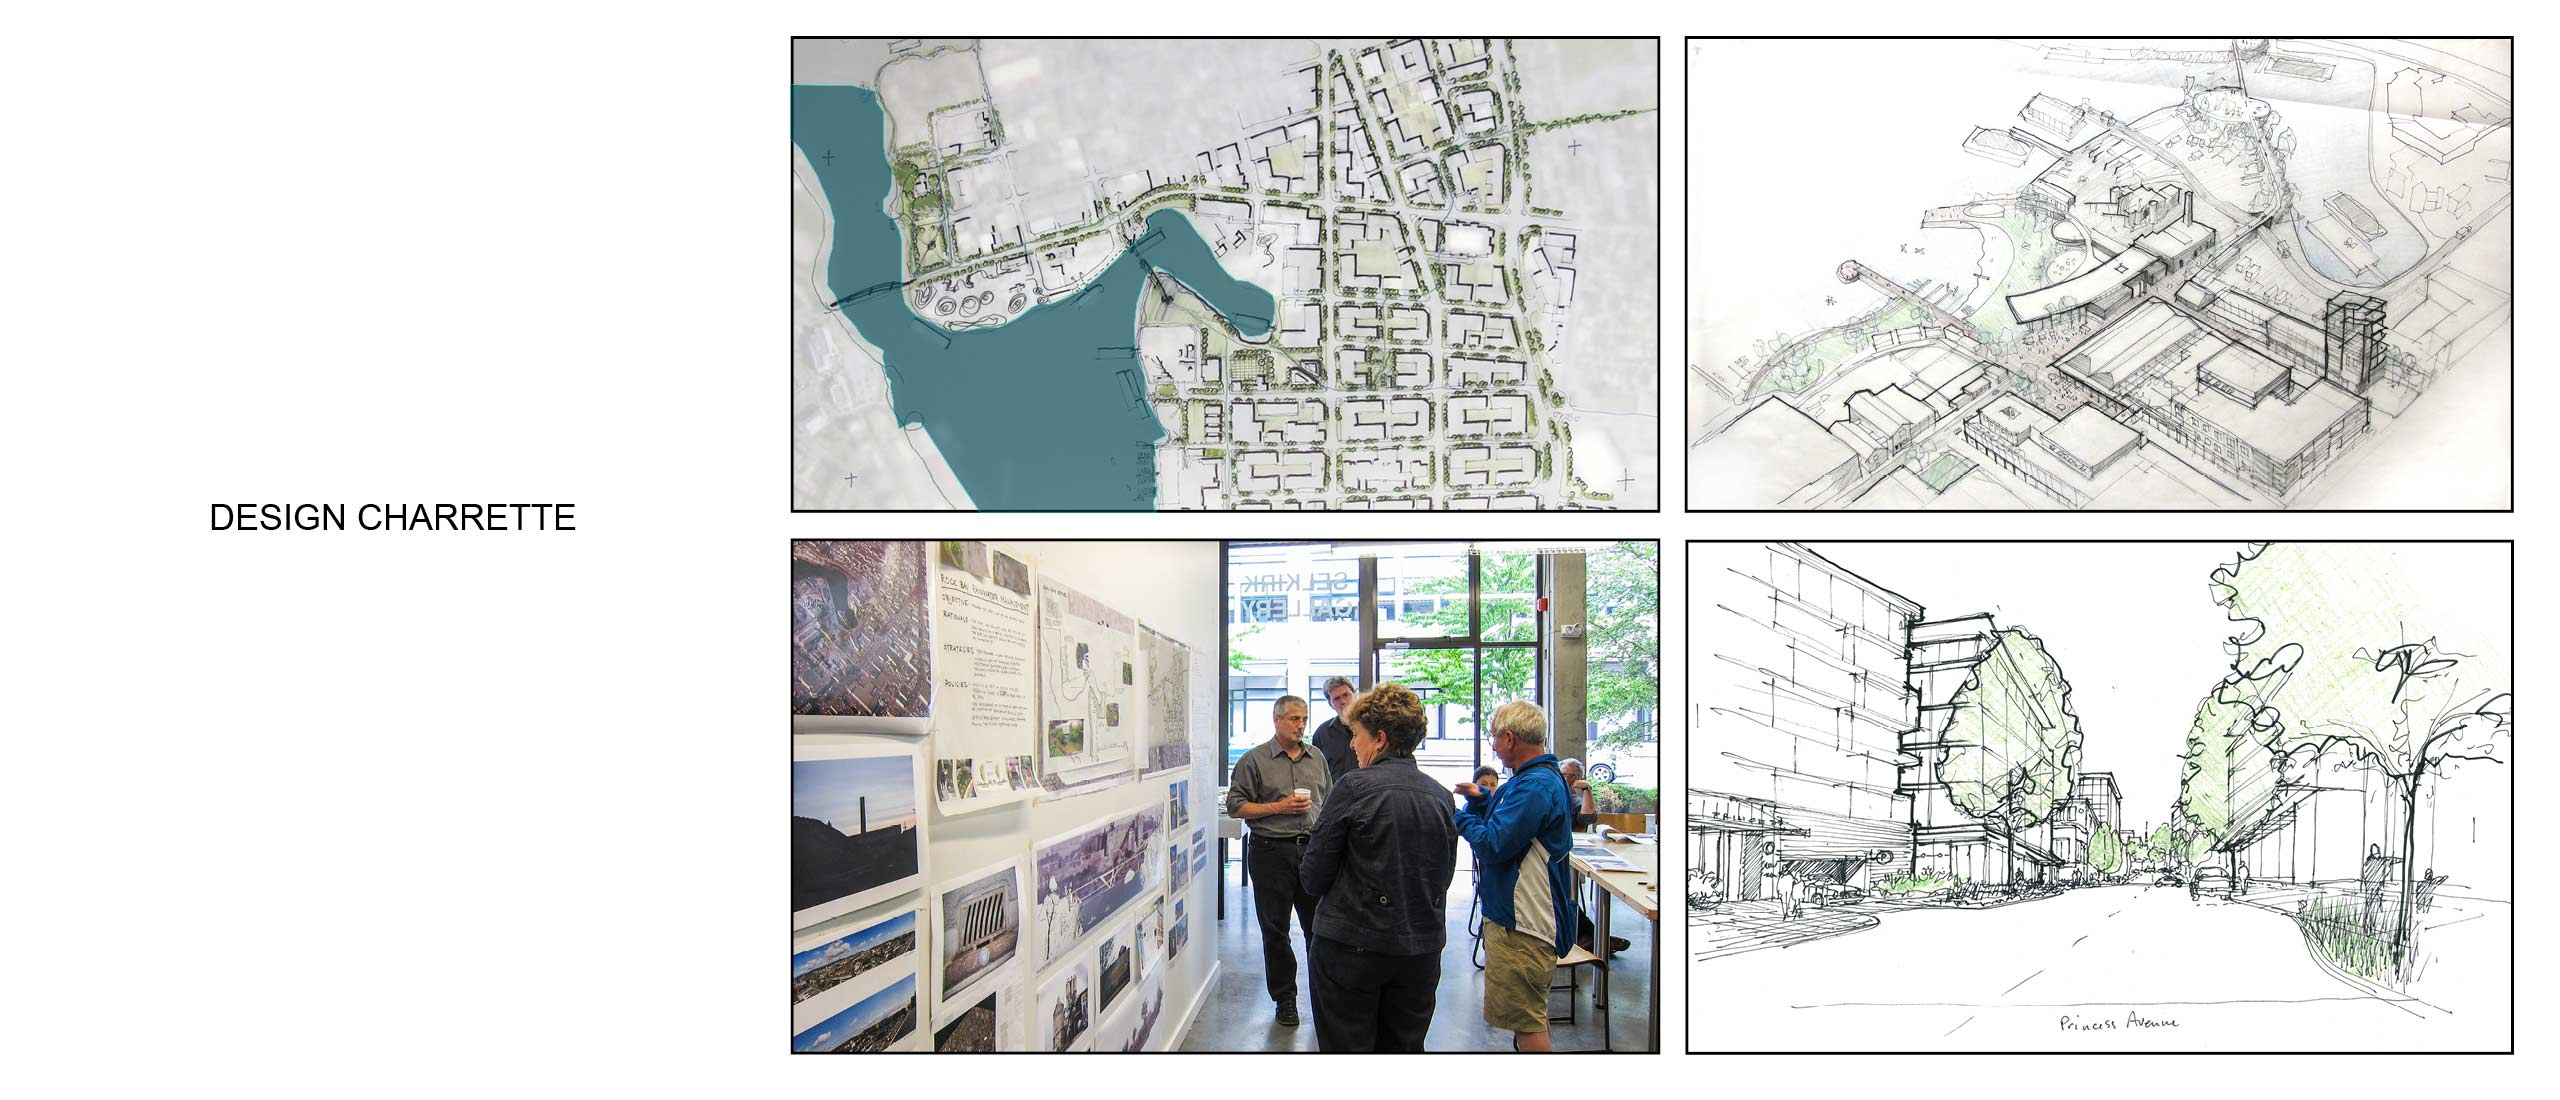 An Urban Design Plan for Rock Bay © DAU